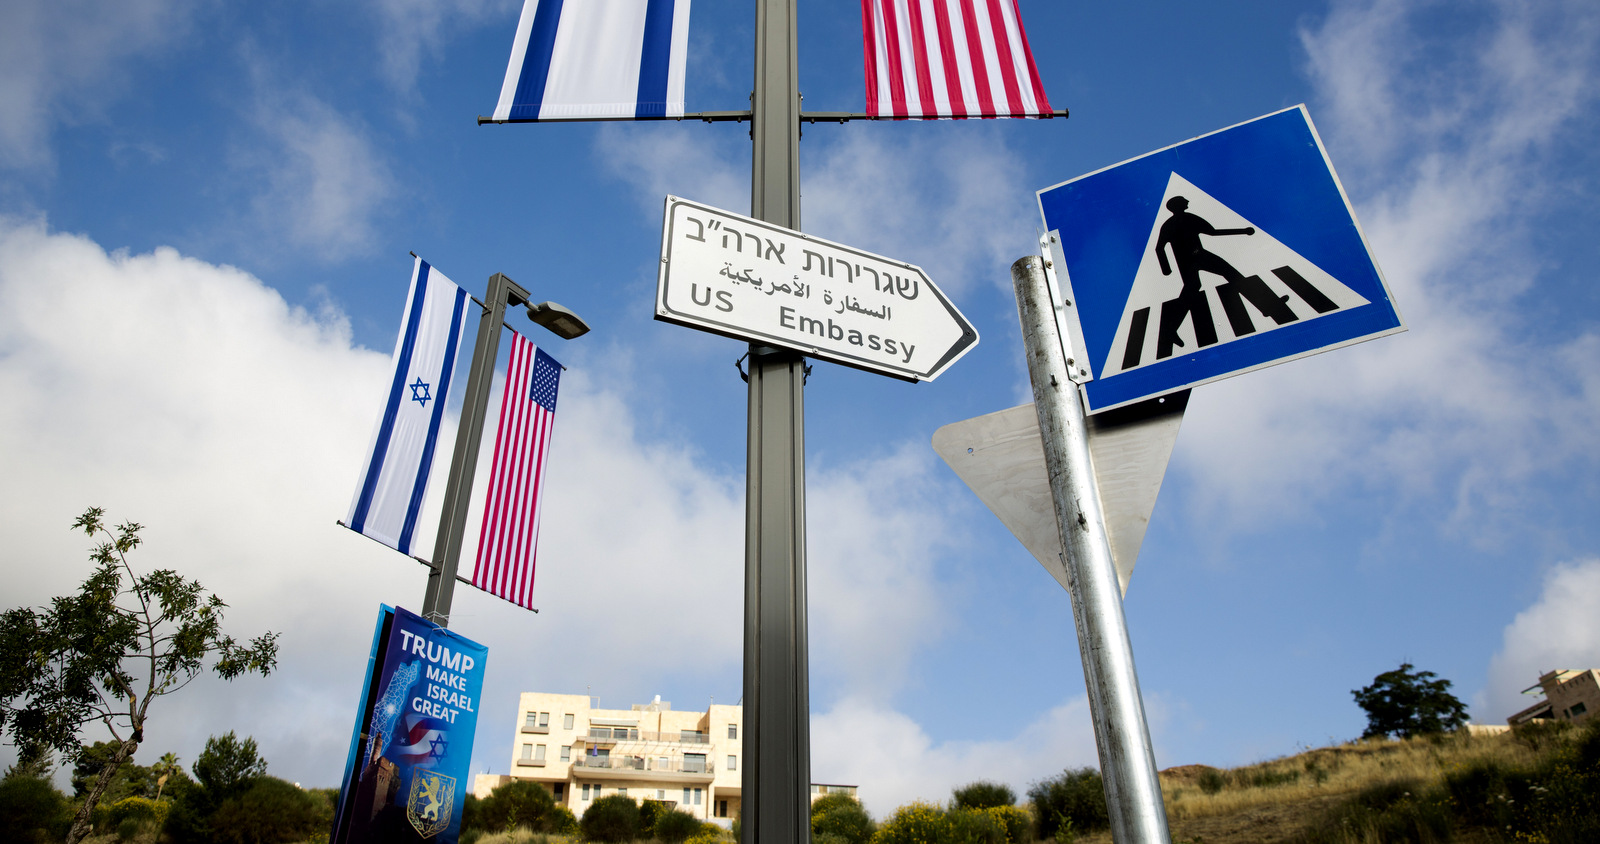 A road sign leading to the U.S. Embassy is seen ahead the official opening in Jerusalem, Sunday, May 13, 2018. Monday's opening of the U.S. Embassy in contested Jerusalem, cheered by Israelis as a historic validation, is seen by Palestinians as an in-your-face affirmation of pro-Israel bias by President Donald Trump and a new blow to frail statehood dreams. (AP Photo/Ariel Schalit)